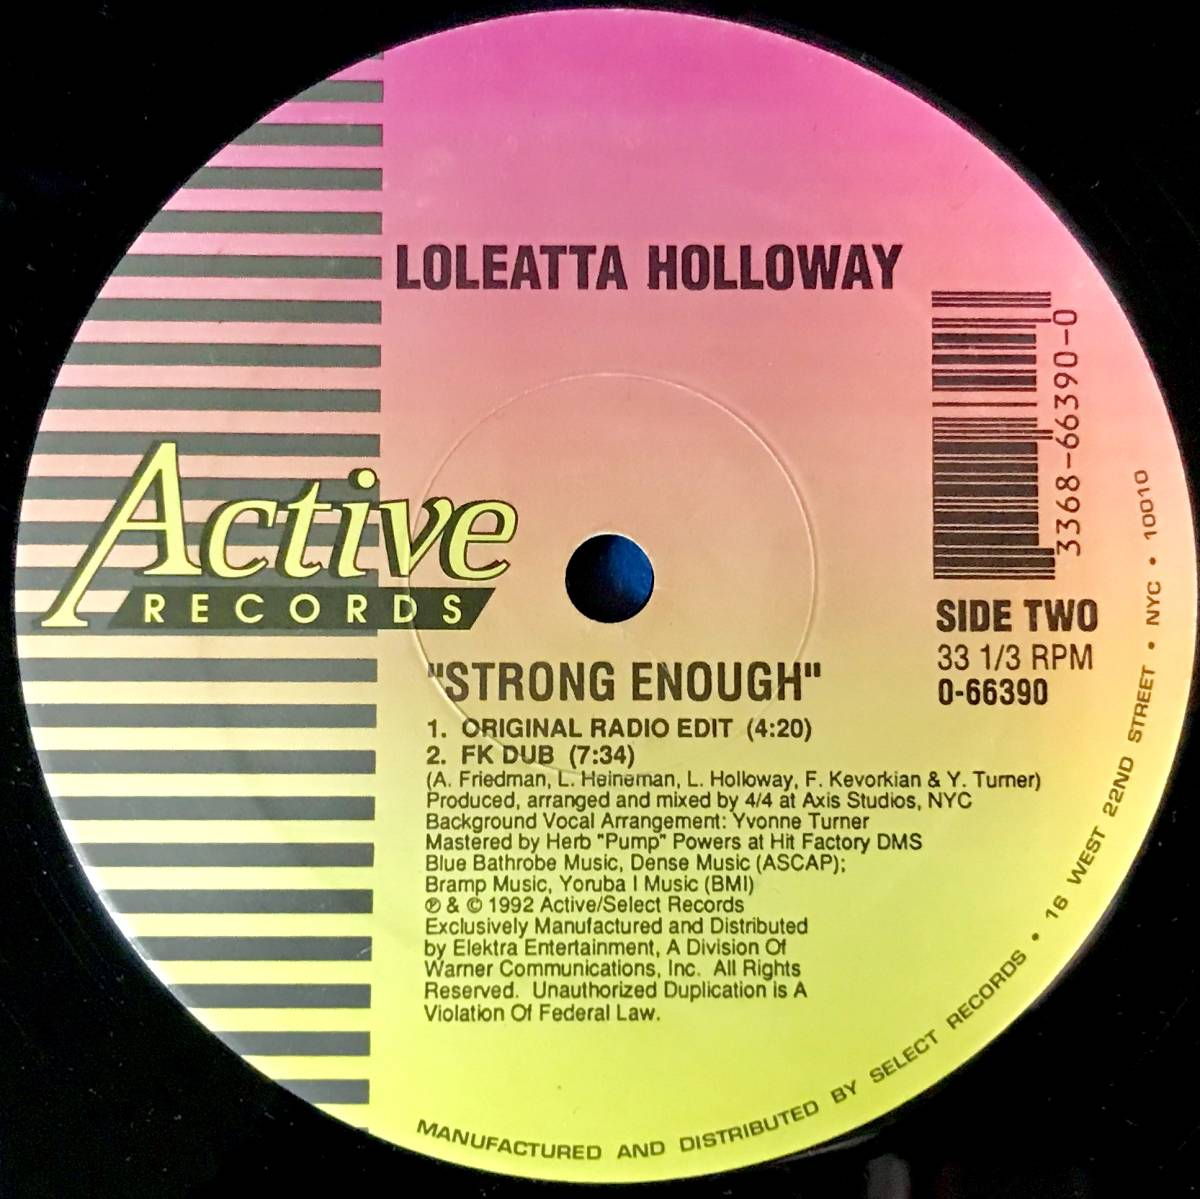 【HOUSE】LOLEATTA HOLLOWAY//STRONG ENOUGH//0-66390//12INCH VINYL/US/FRANCOIS KEVORKIAN/LARRY LEVAN/LOFT/GARAGE_画像3